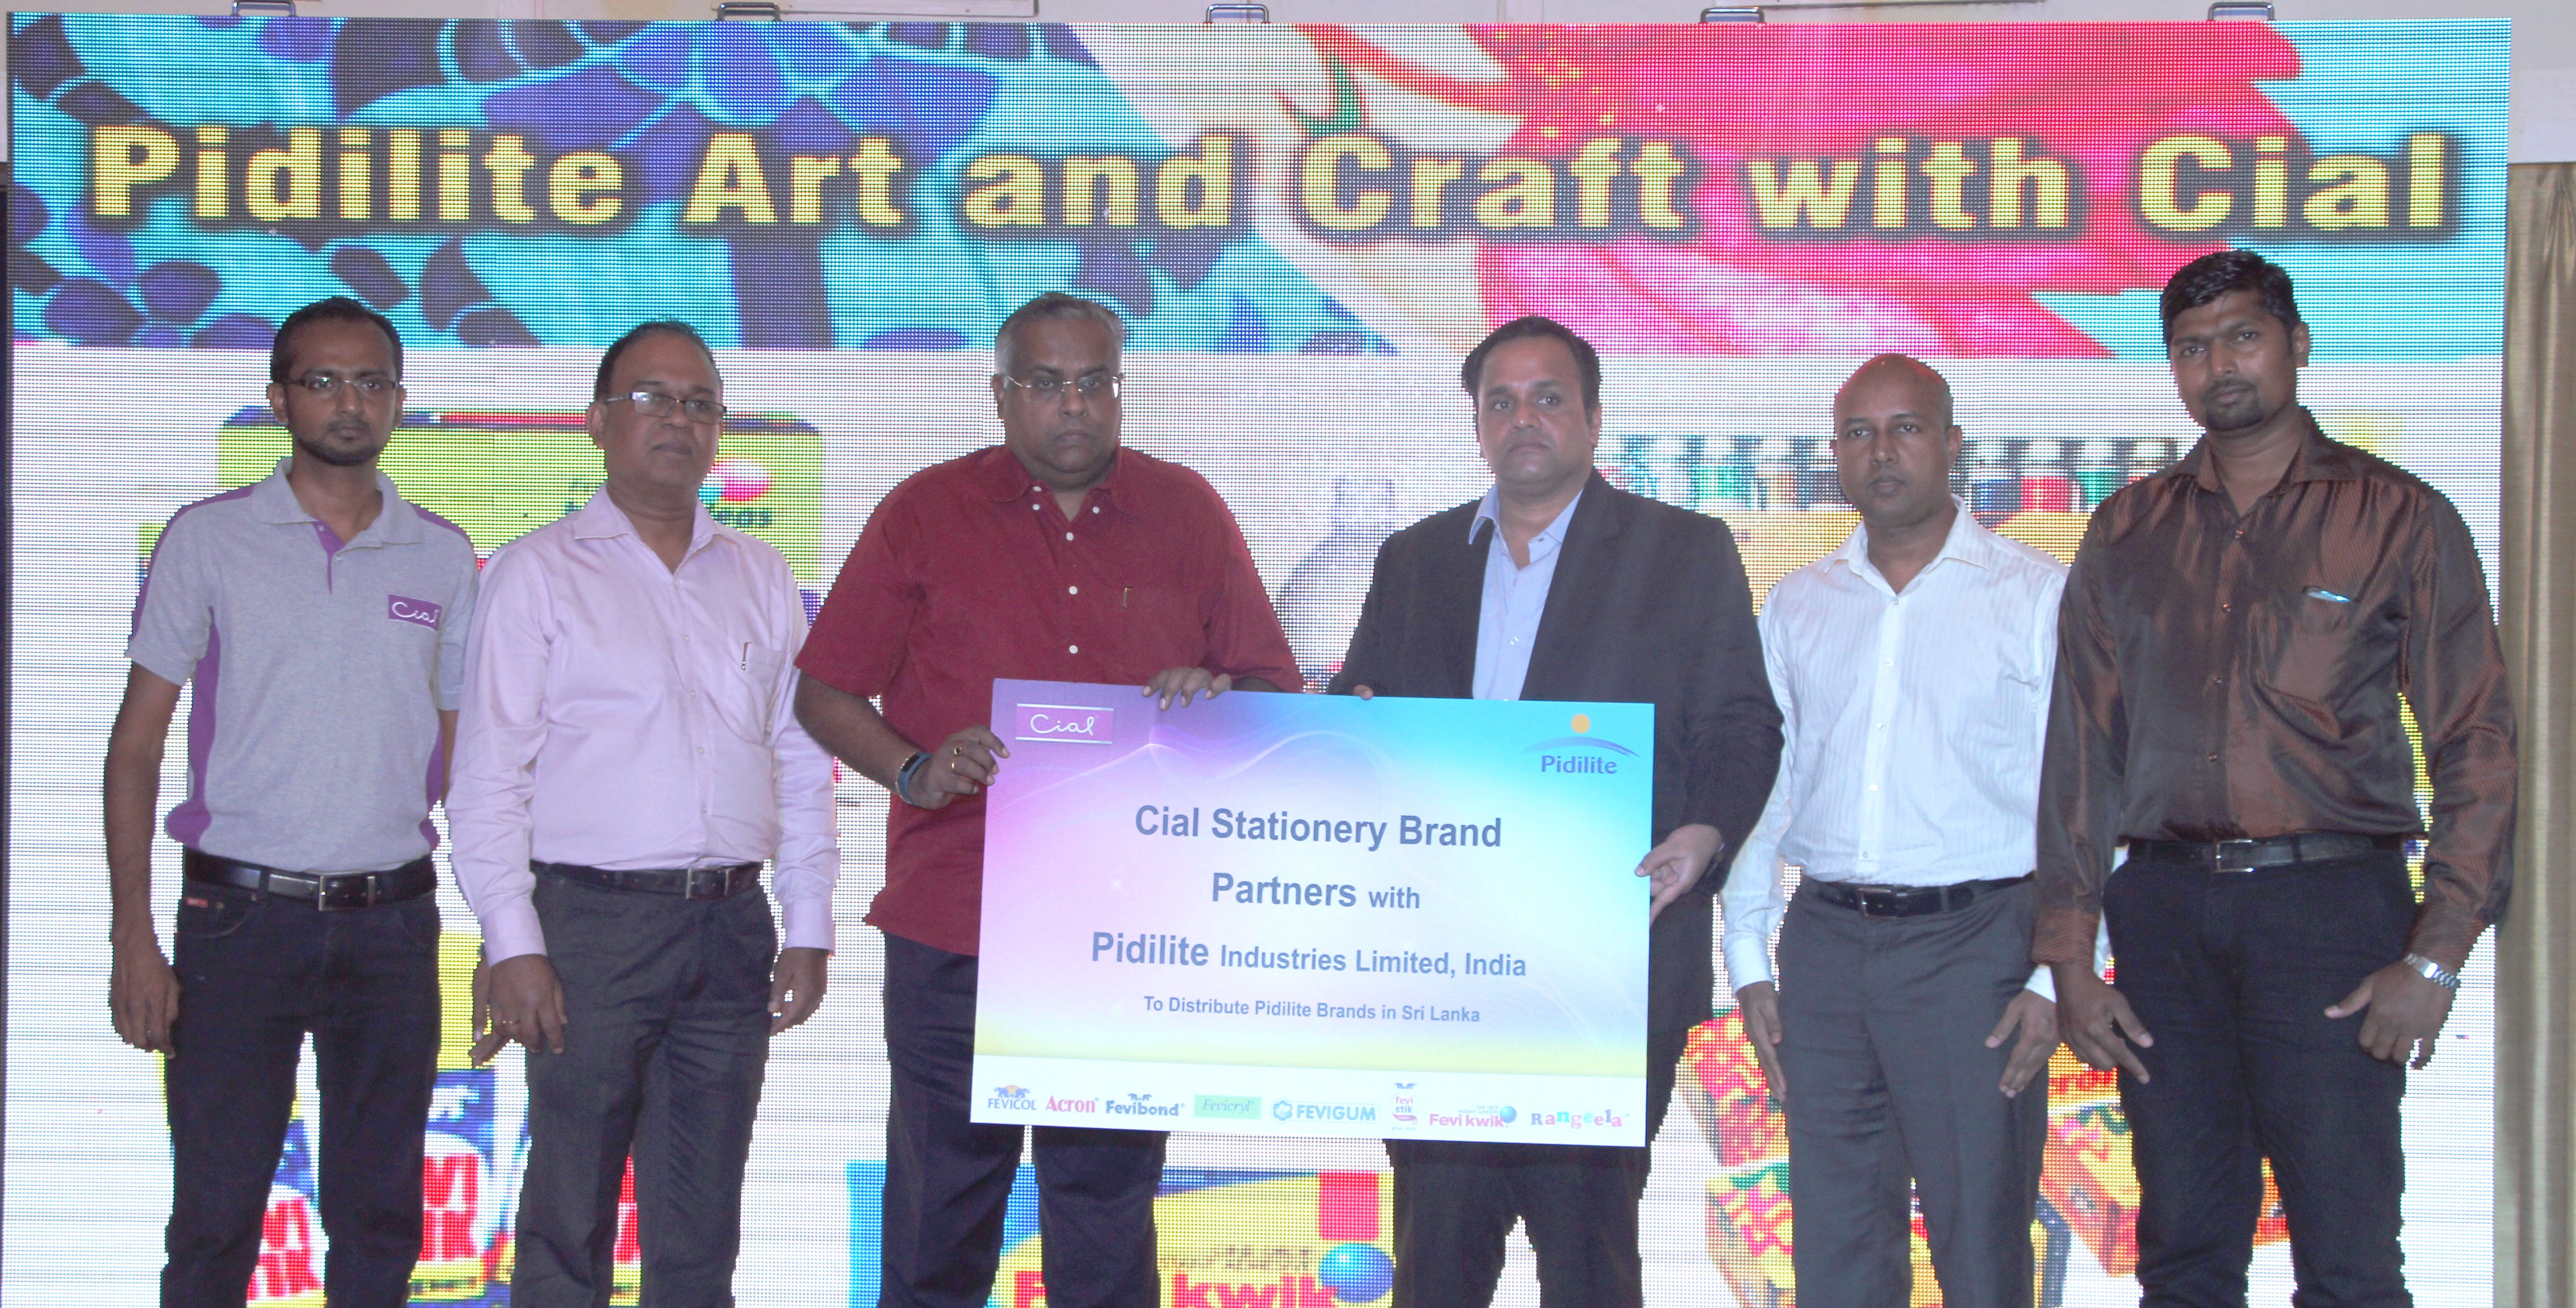 CIC's Cial appointed to distribute art & craft product range of